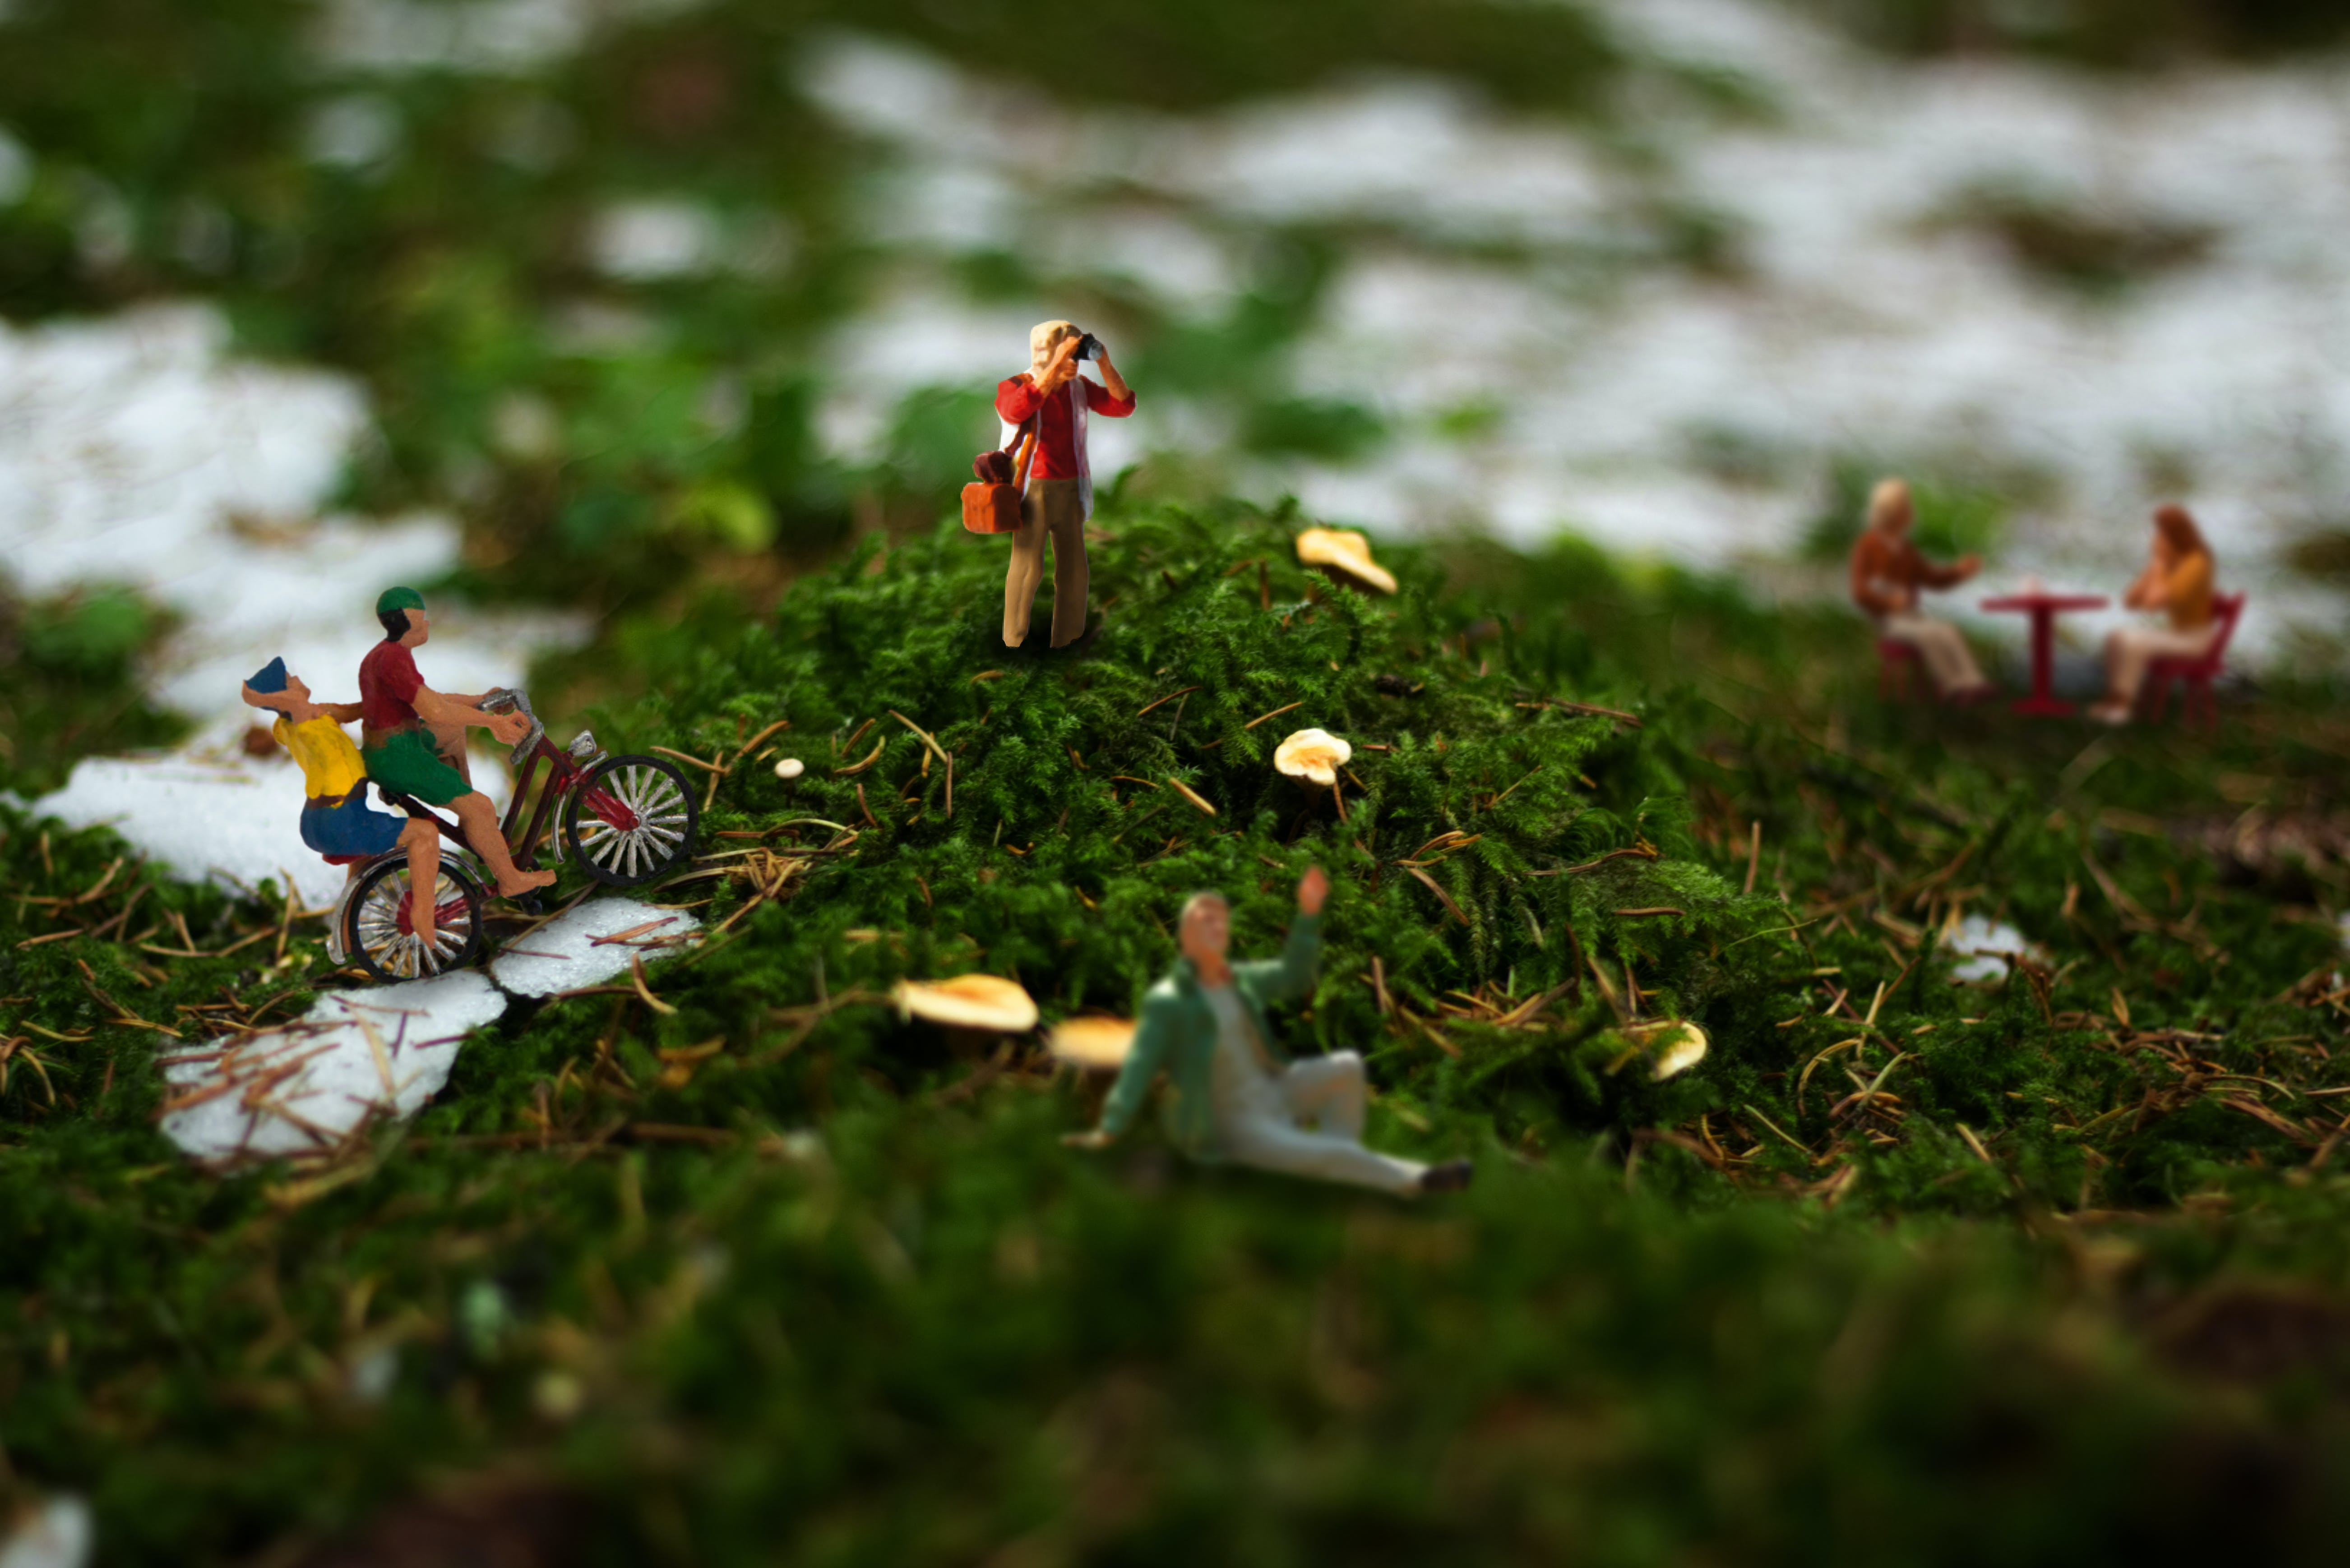 Human Figure Toys on Grass Field